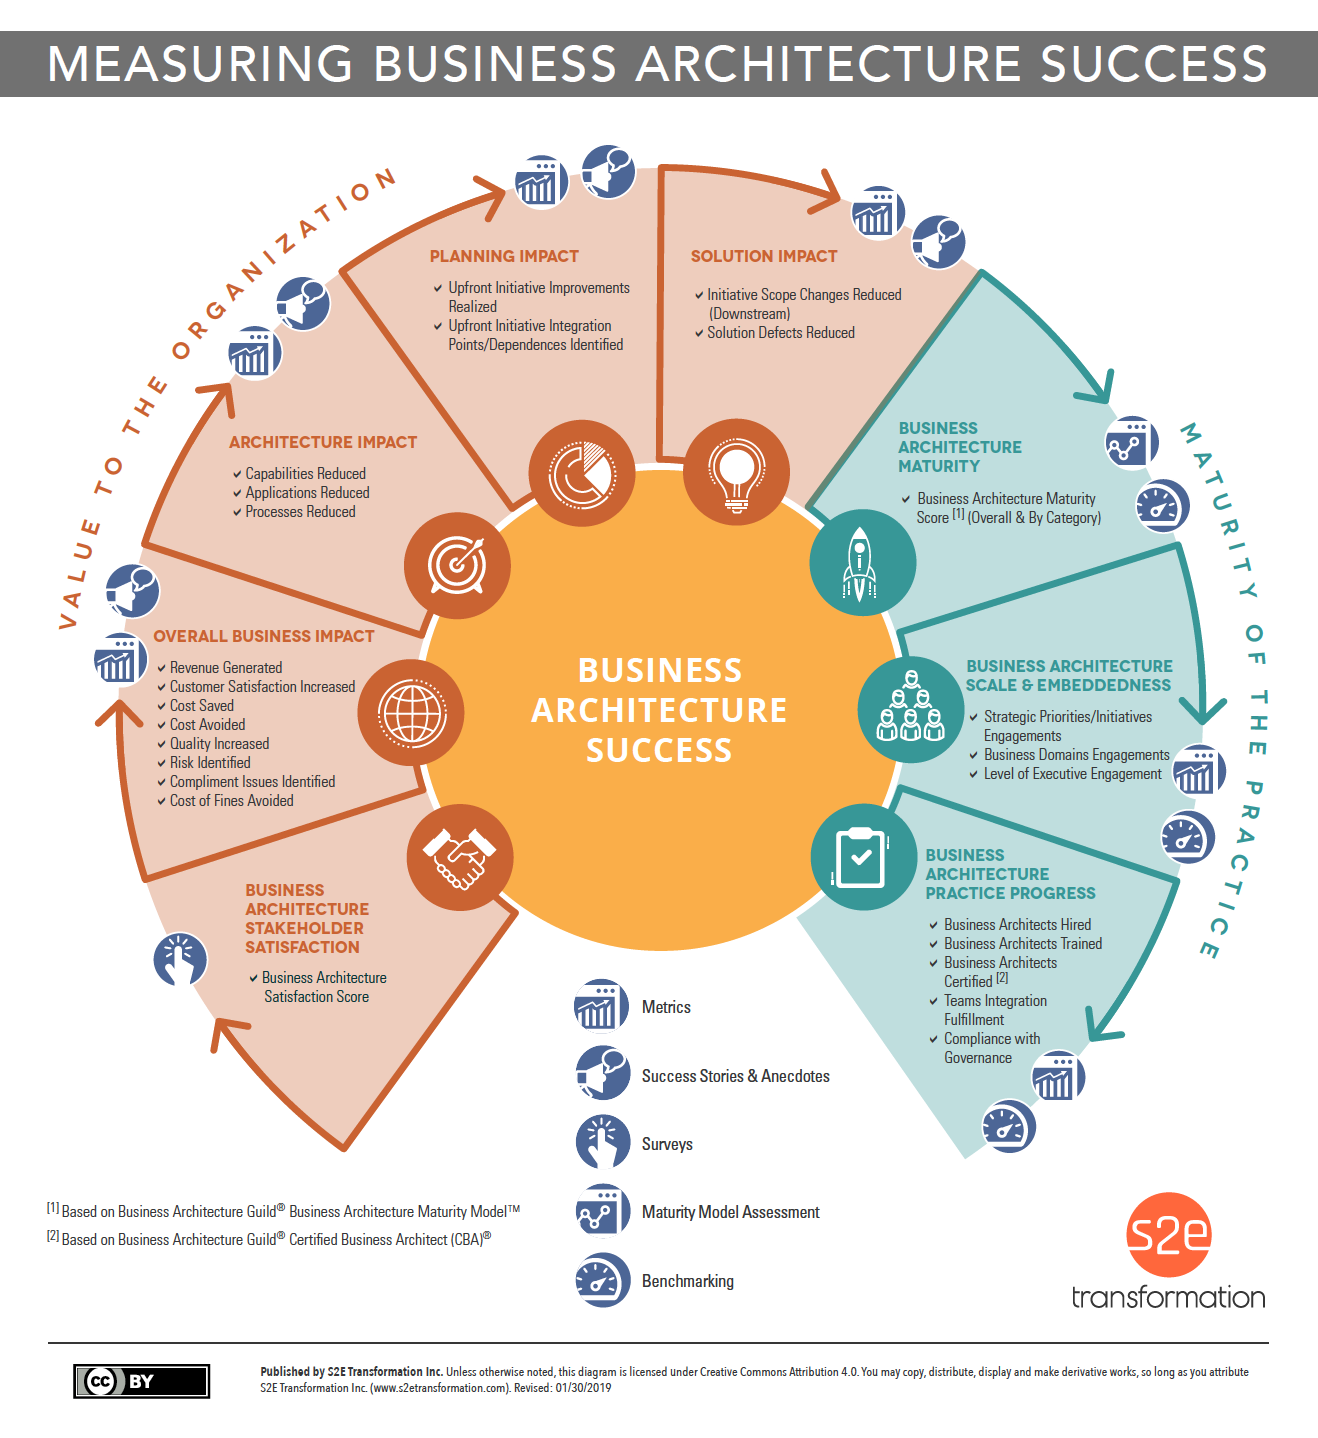 Measuring Business Architecture Success (summary version)